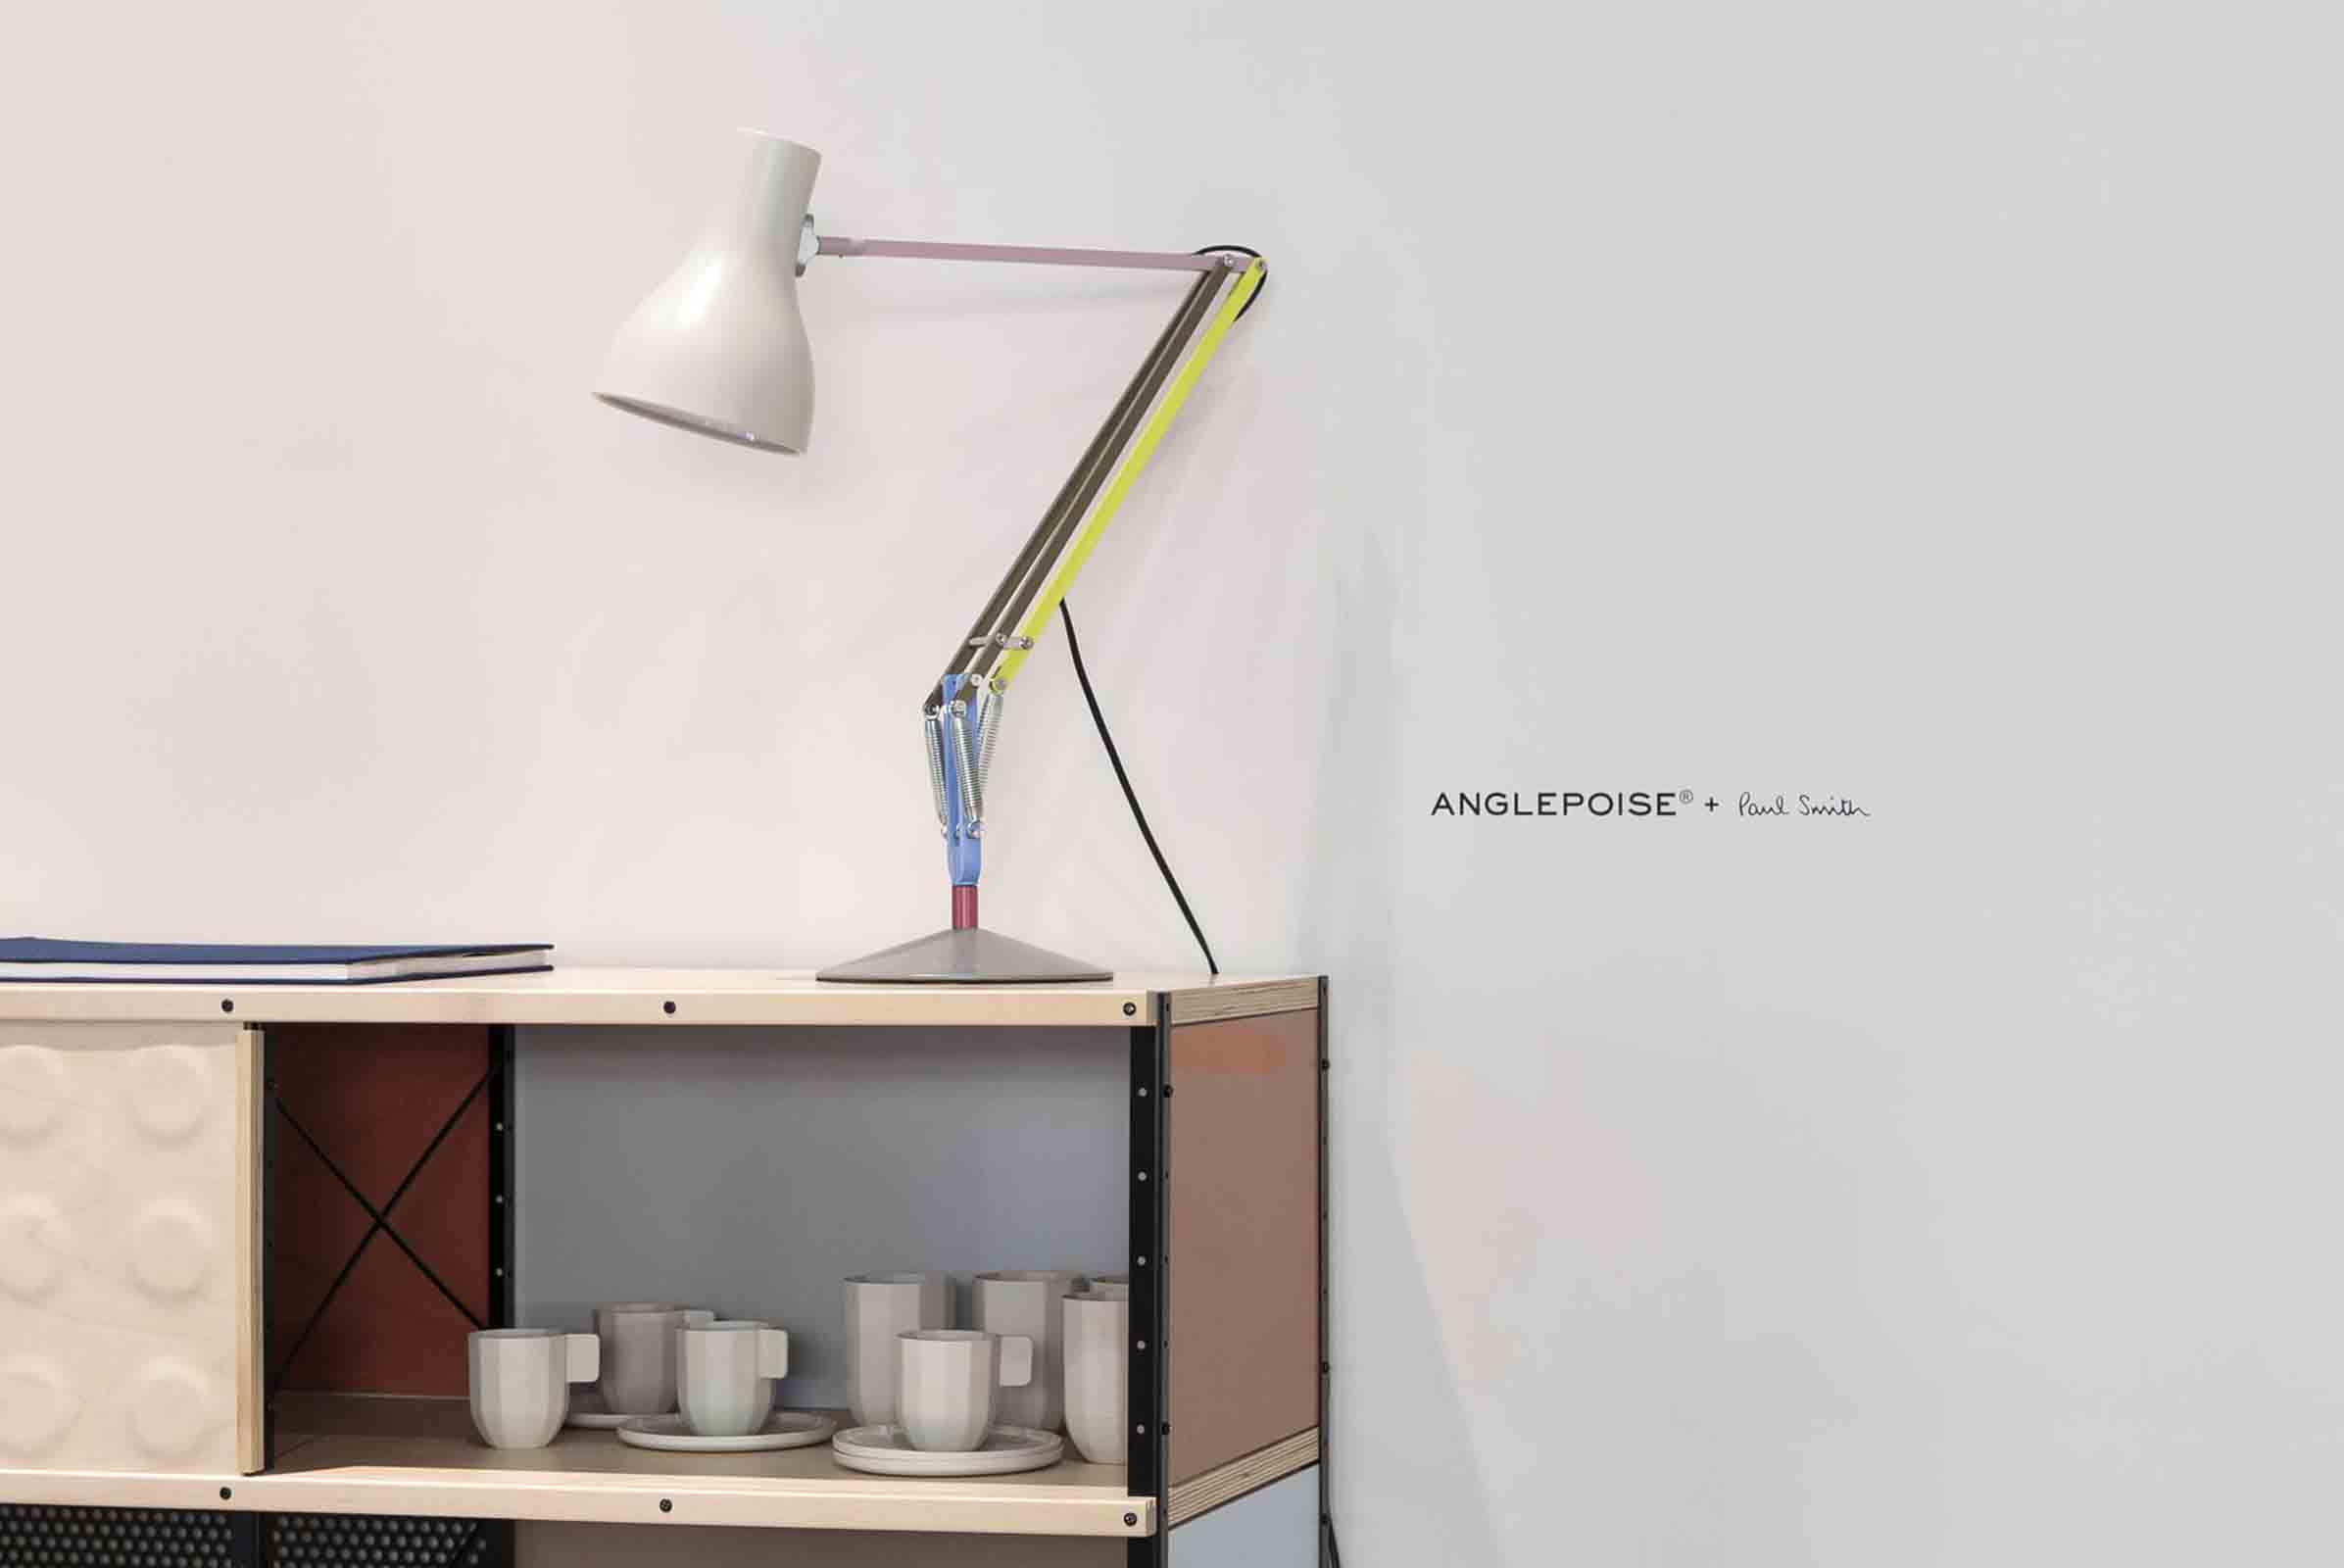 A clever, and oh so British, collaboration between Anglepoise and Paul Smith